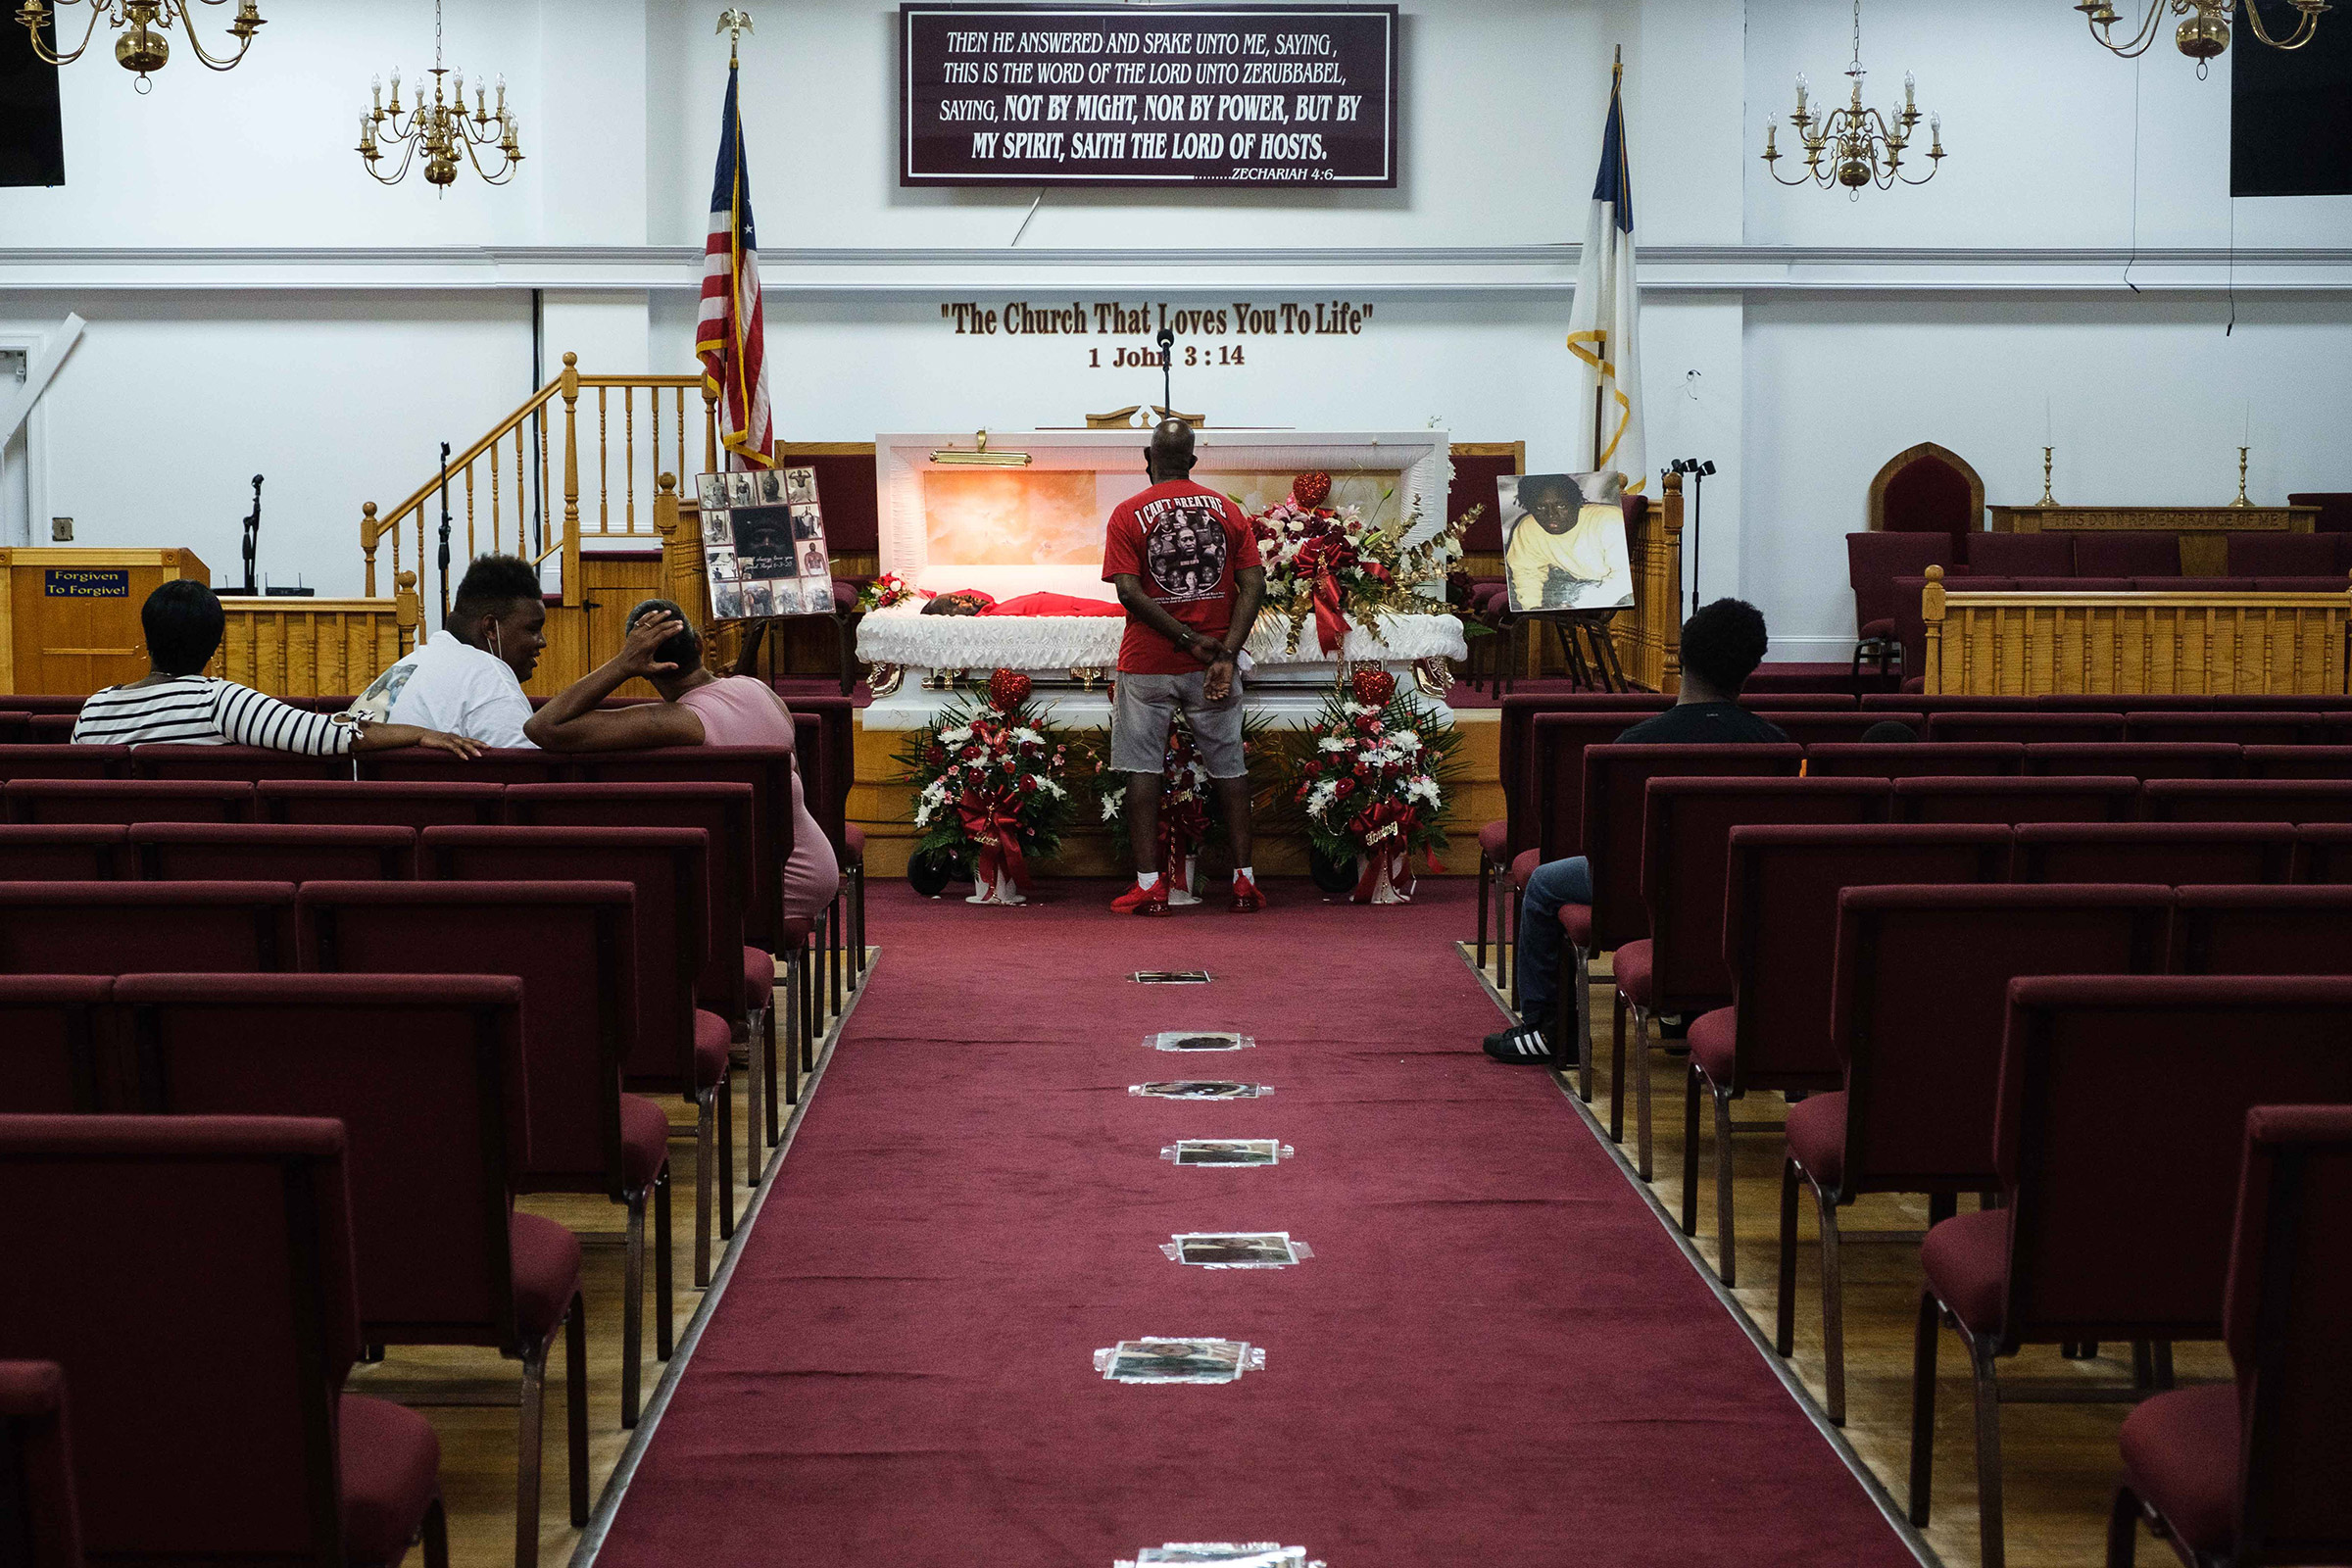 James Floyd, Jamel Floyd's father, looks over his son's body during the wake at Judea United Baptist Church in Hempstead, N.Y., on June 29.